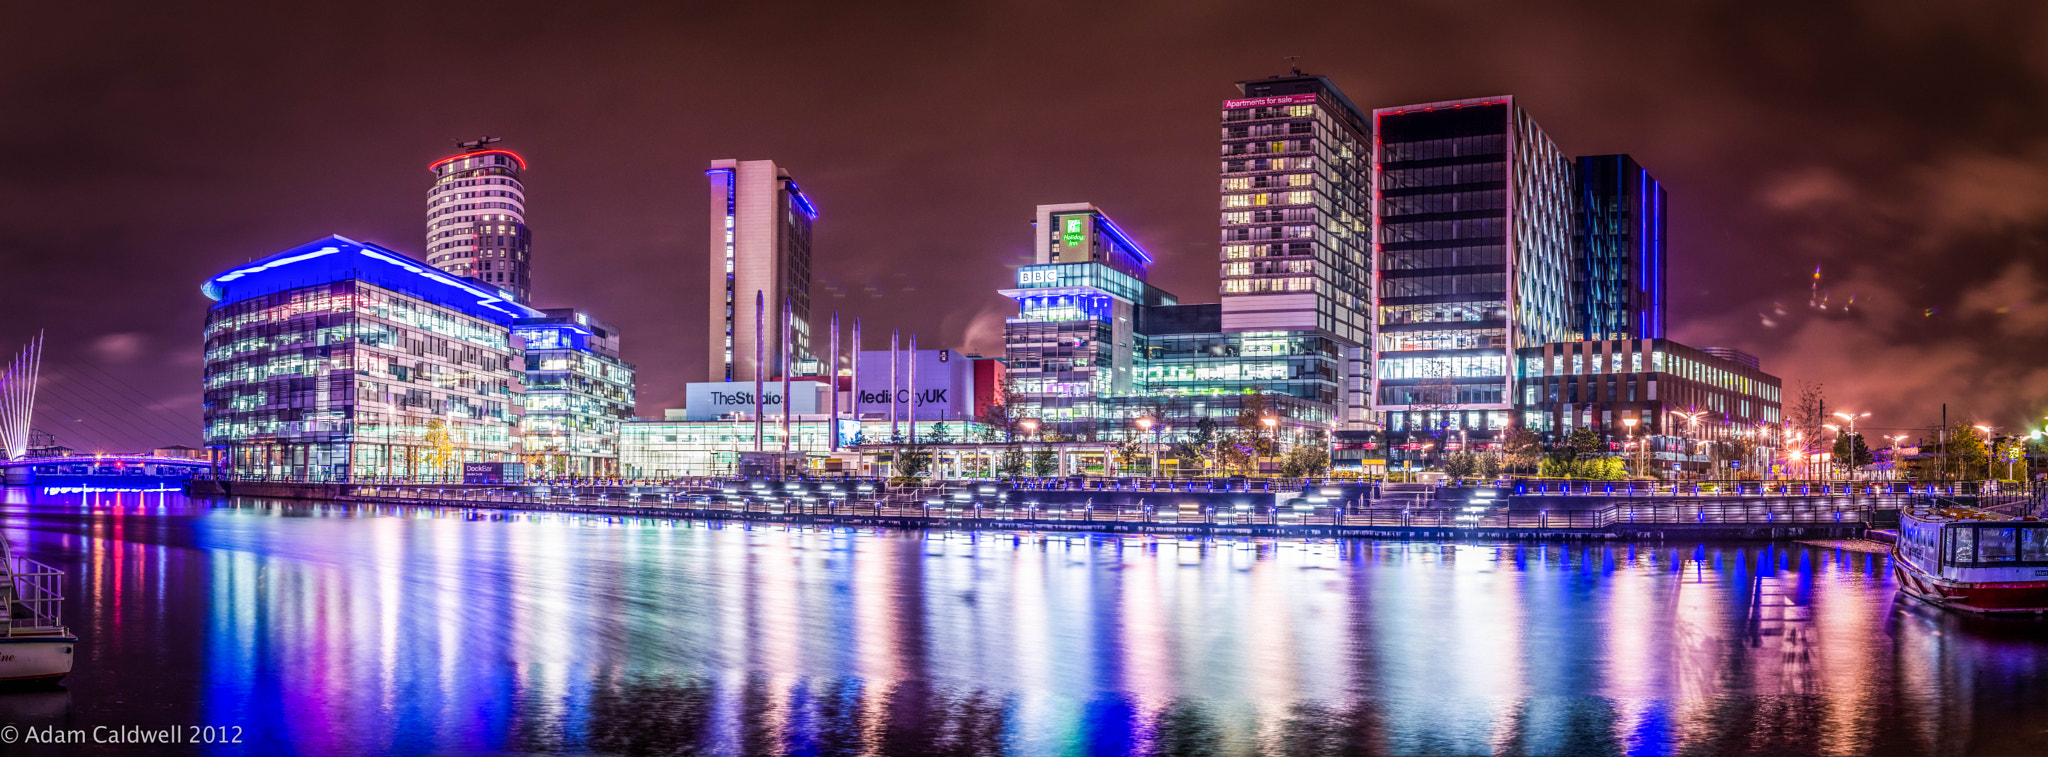 Photograph Salford Quays Panorama by Adam Caldwell on 500px